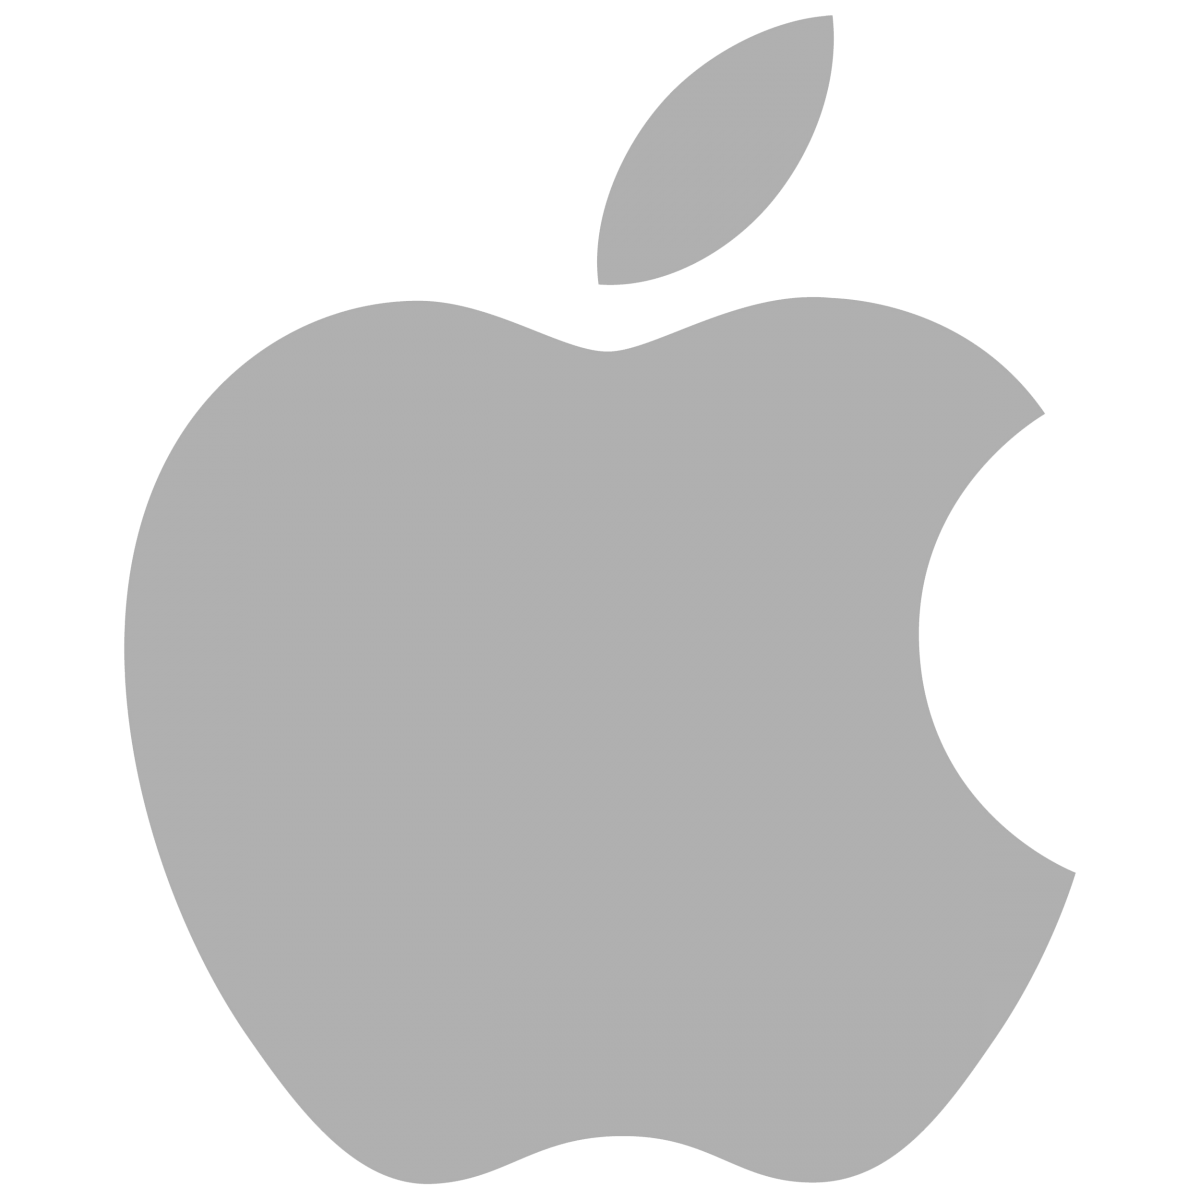 Apple-Logo-Grau